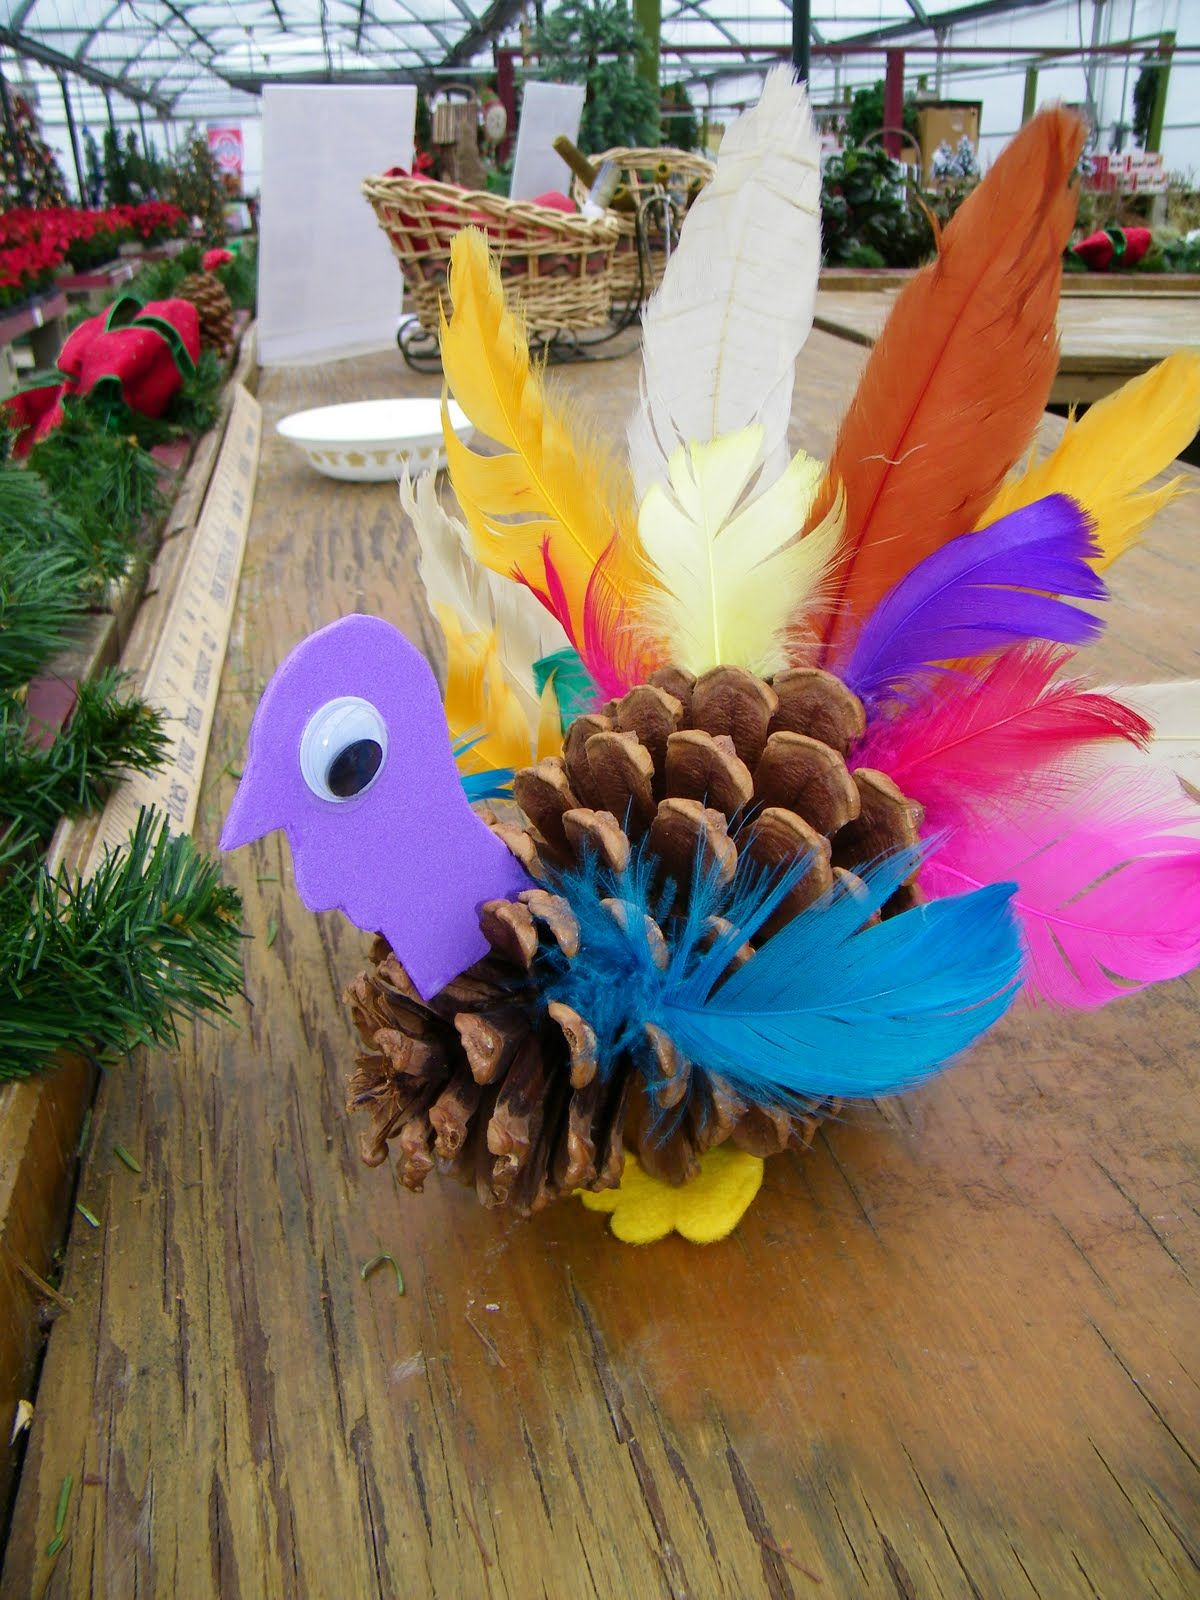 Wilson S Garden Center Kidz Club Turkey Pine Cone Craft